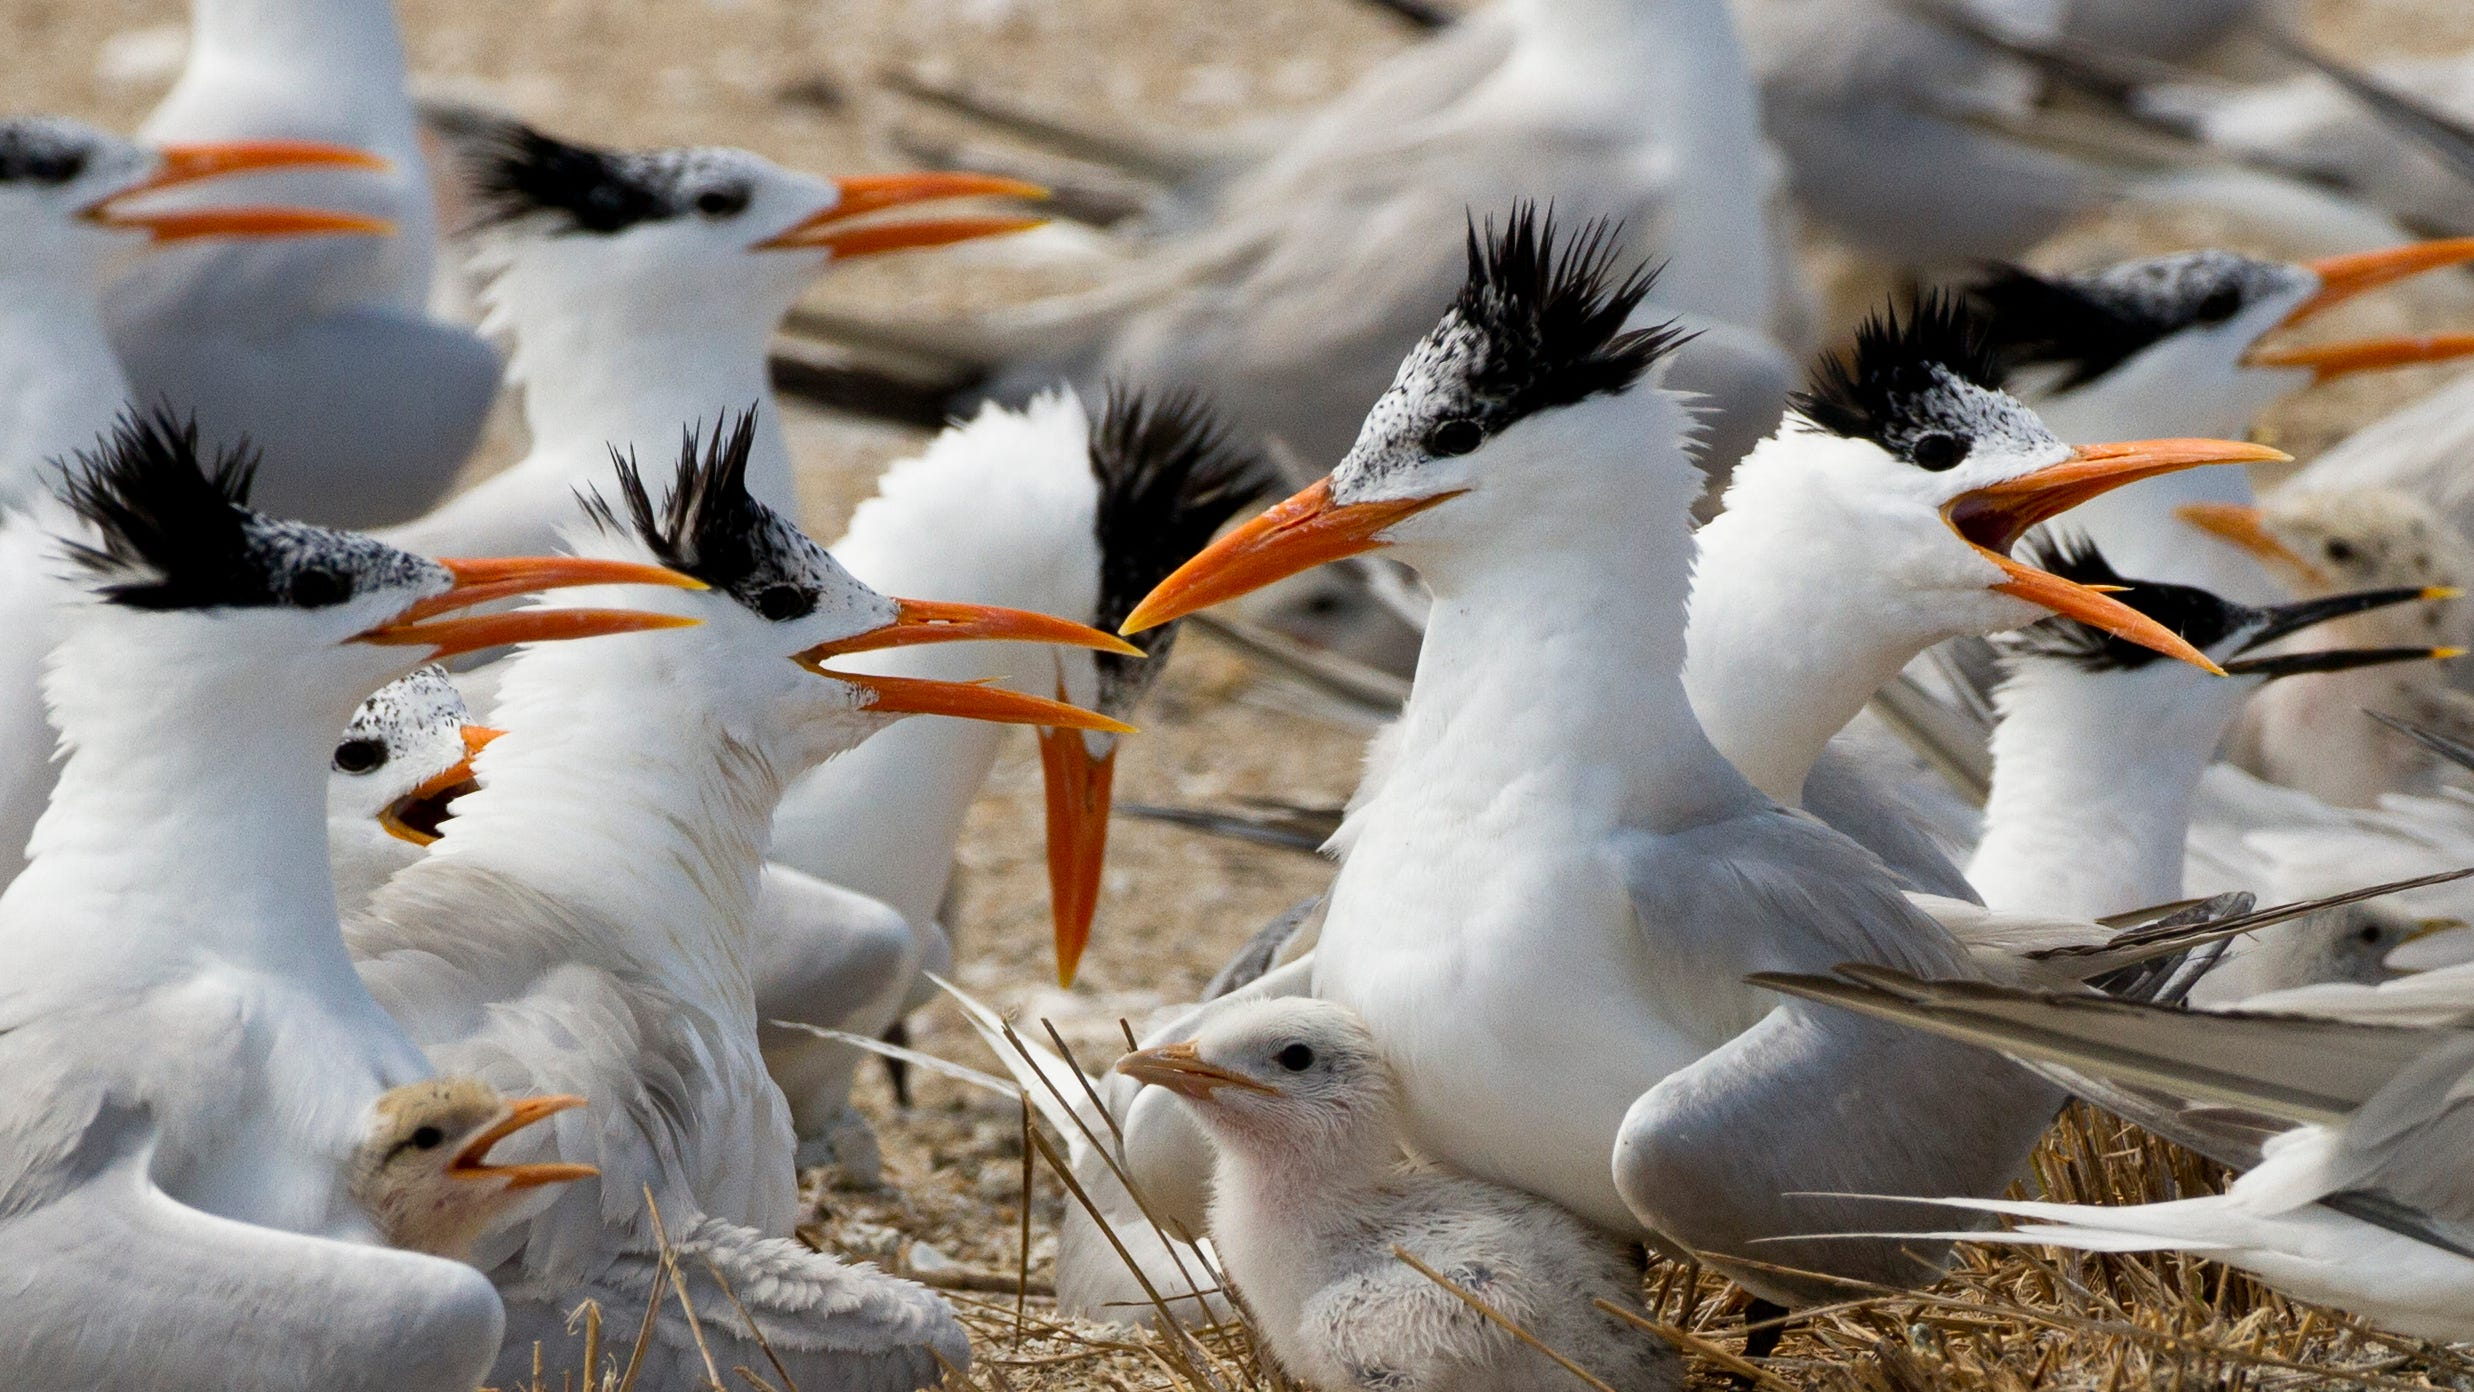 Terns on the beach.